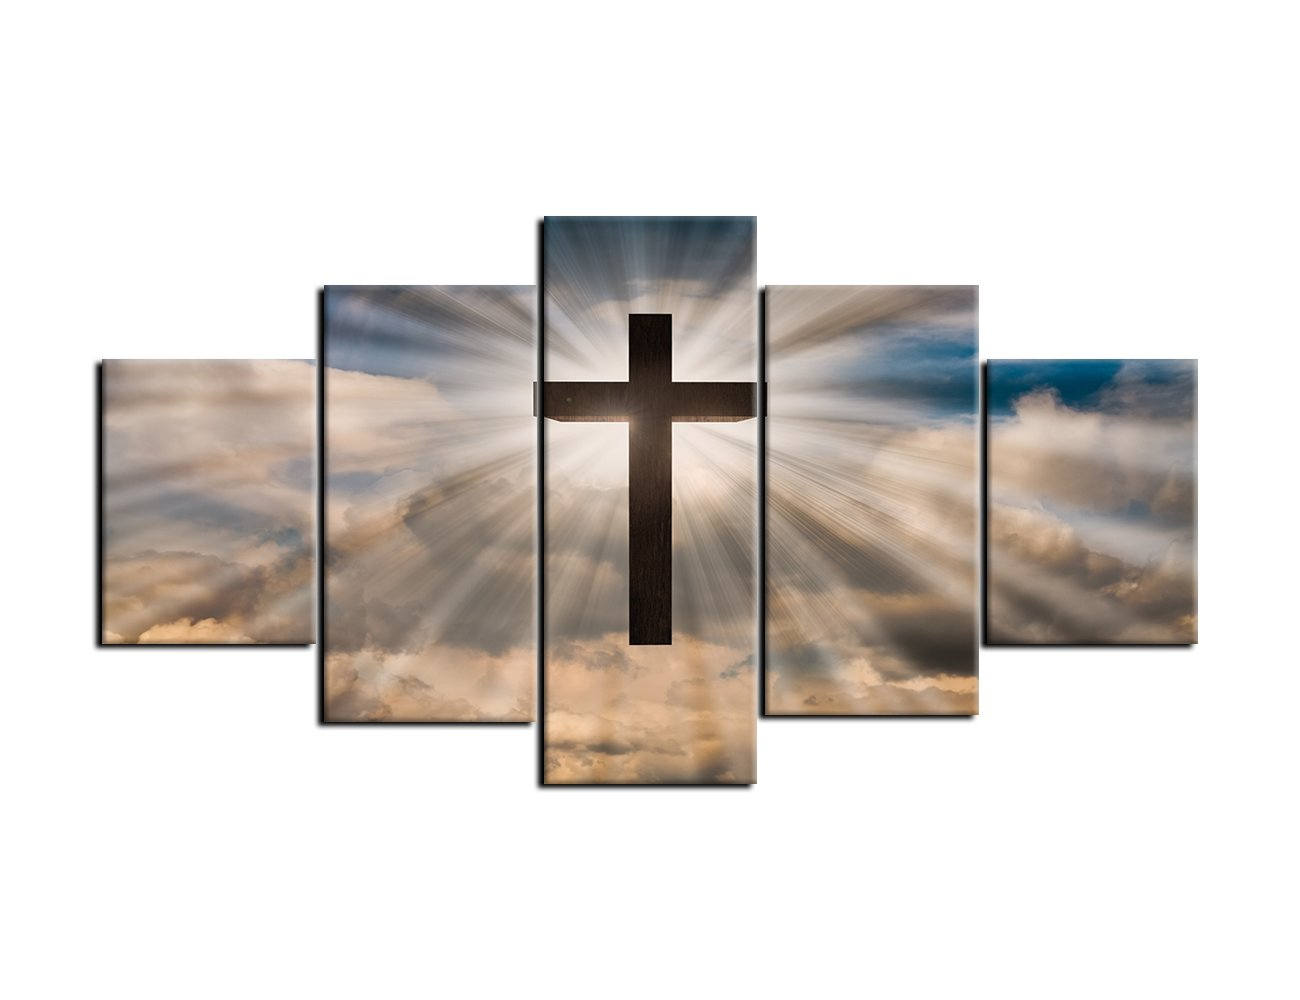 charming Cross Wall Art Part - 9: AMEMNY Jesus Christ Cross Wall Art Canvas Painting Print Poster 5 Panel on  A Dramatic Sky with Clouds Background Painting Christian Wall Decoration  for ...